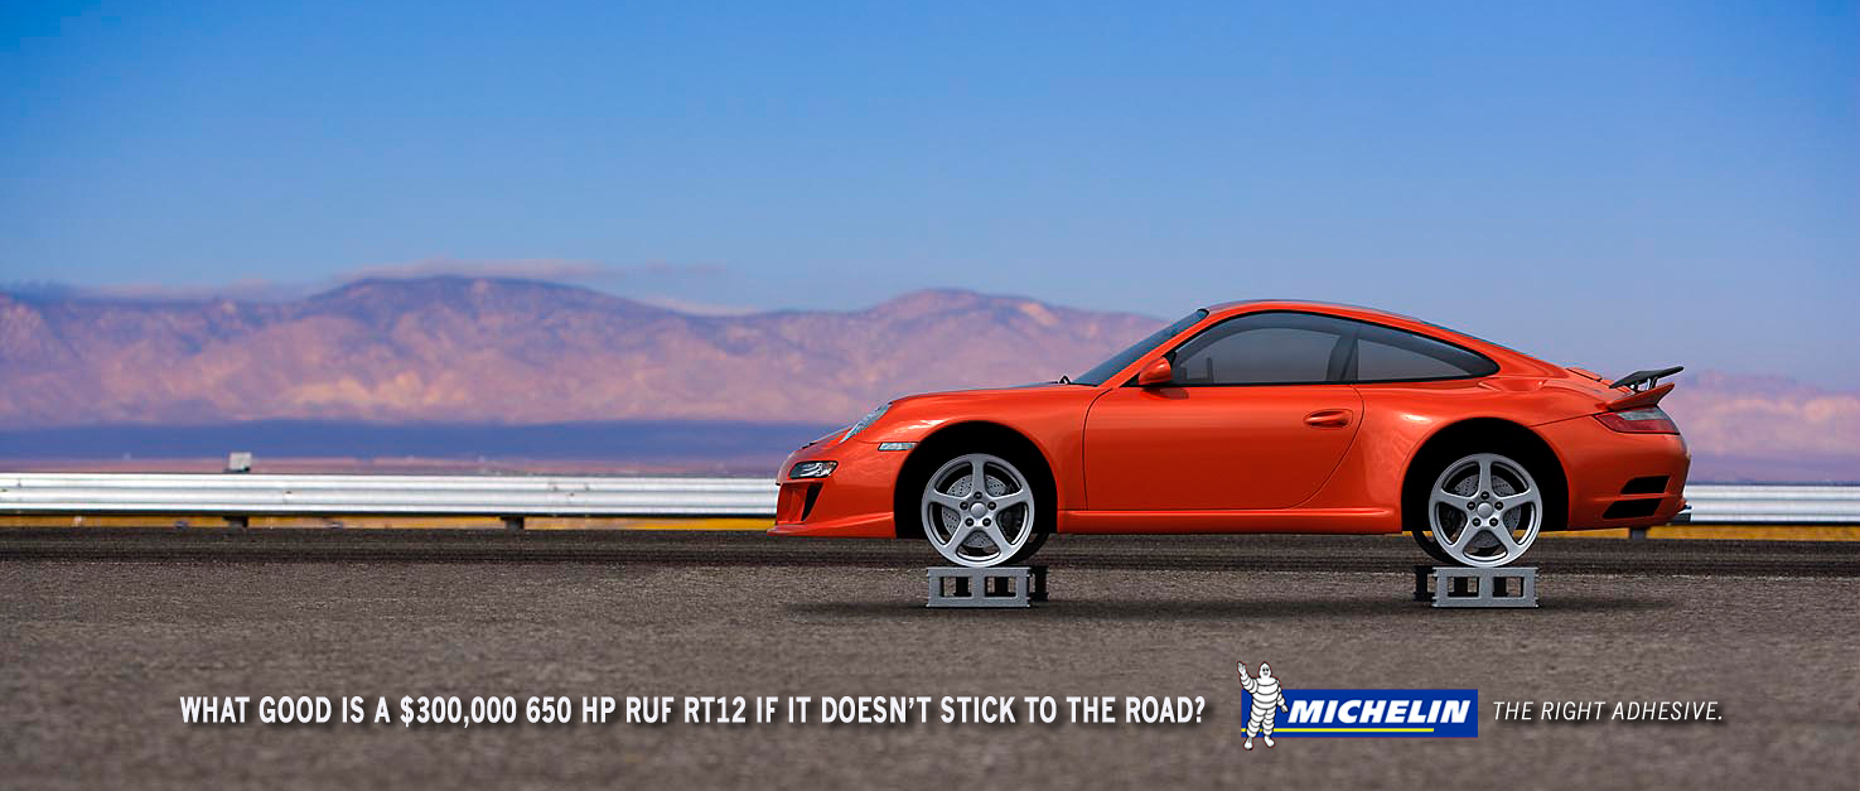 Stage3_Michelin_Ruf_in_desert.jpg